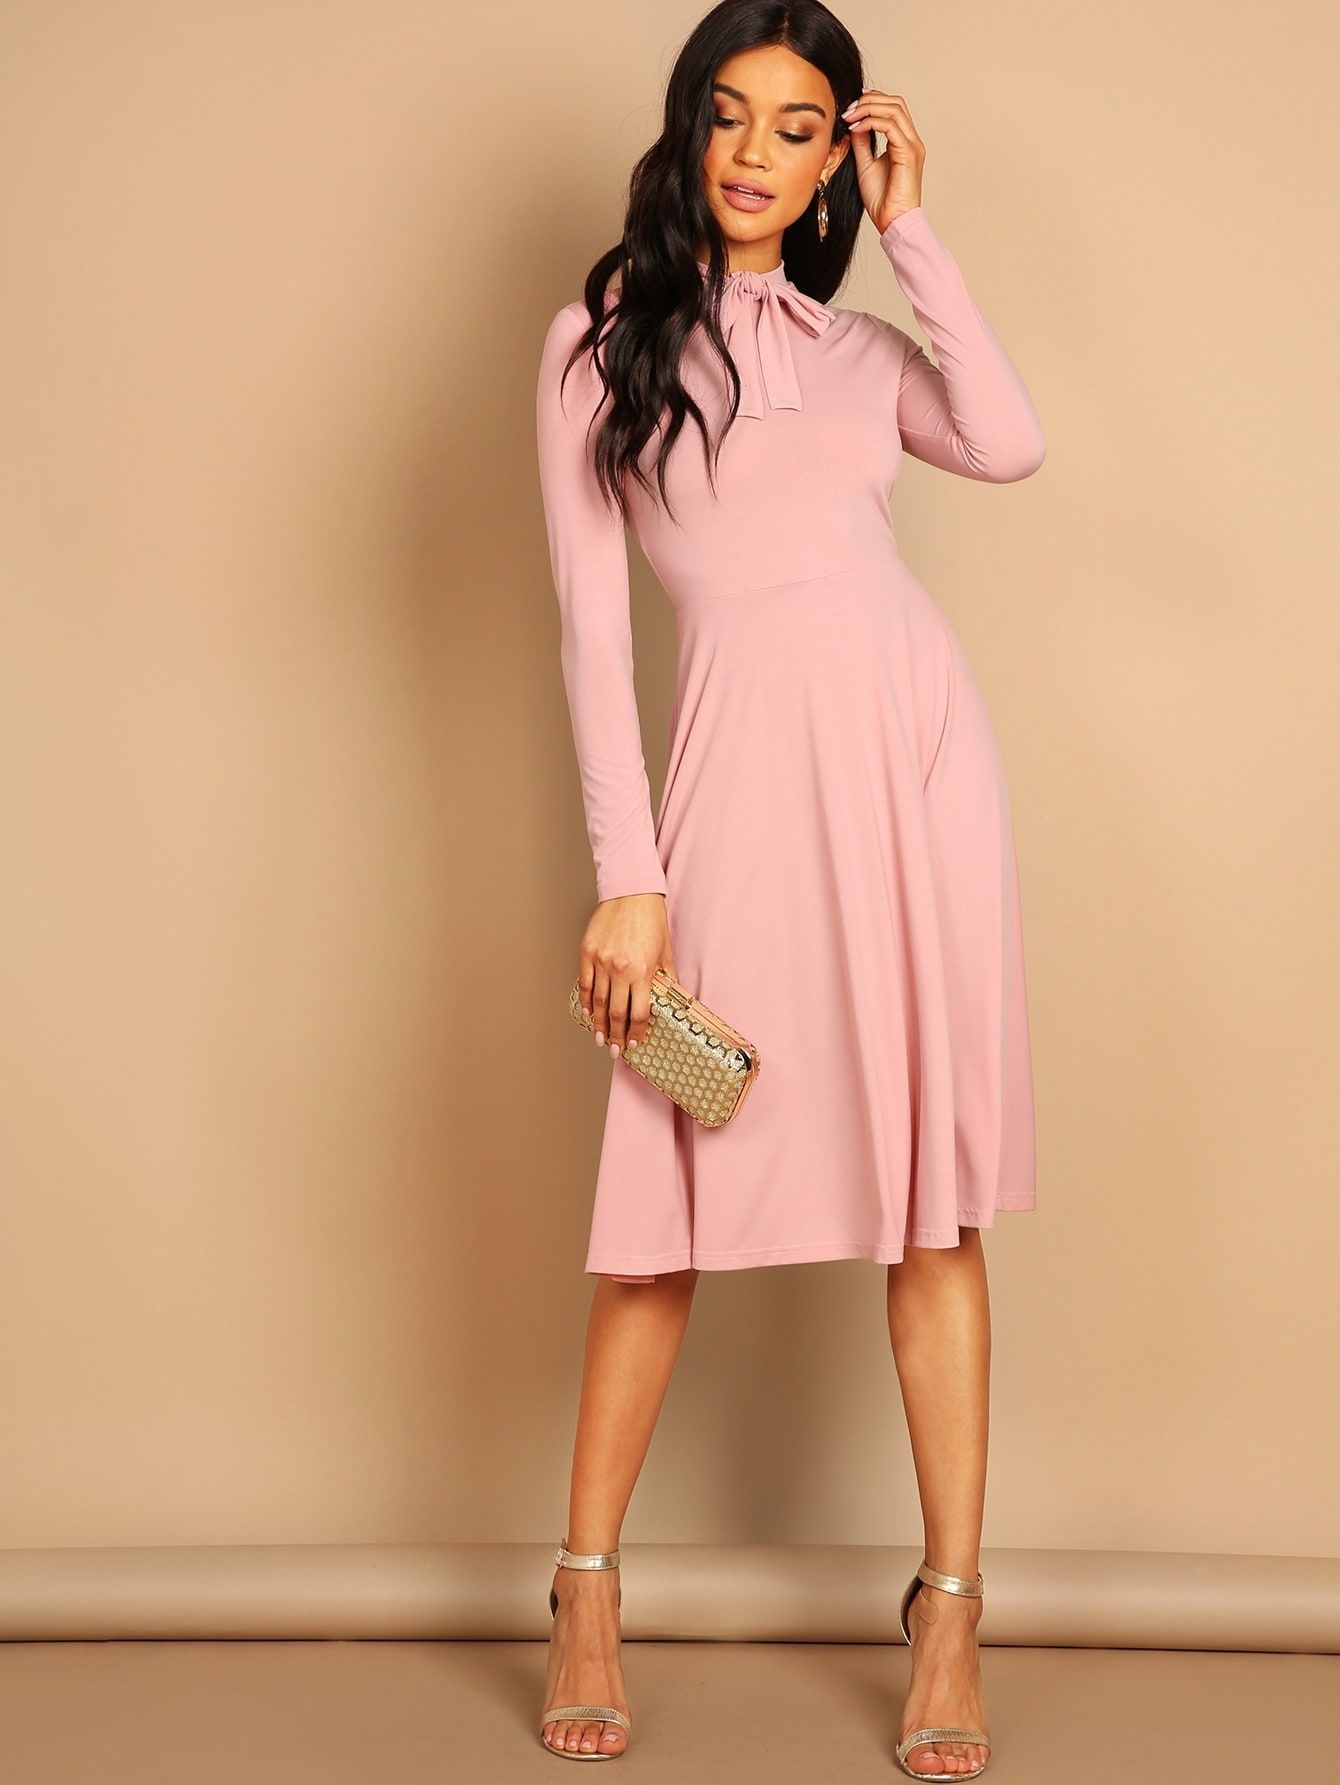 94c0e49240 Casual Plain Shift High Neck Long Sleeve Natural Pink Knee Length Tie Neck  Solid Flowy Dress